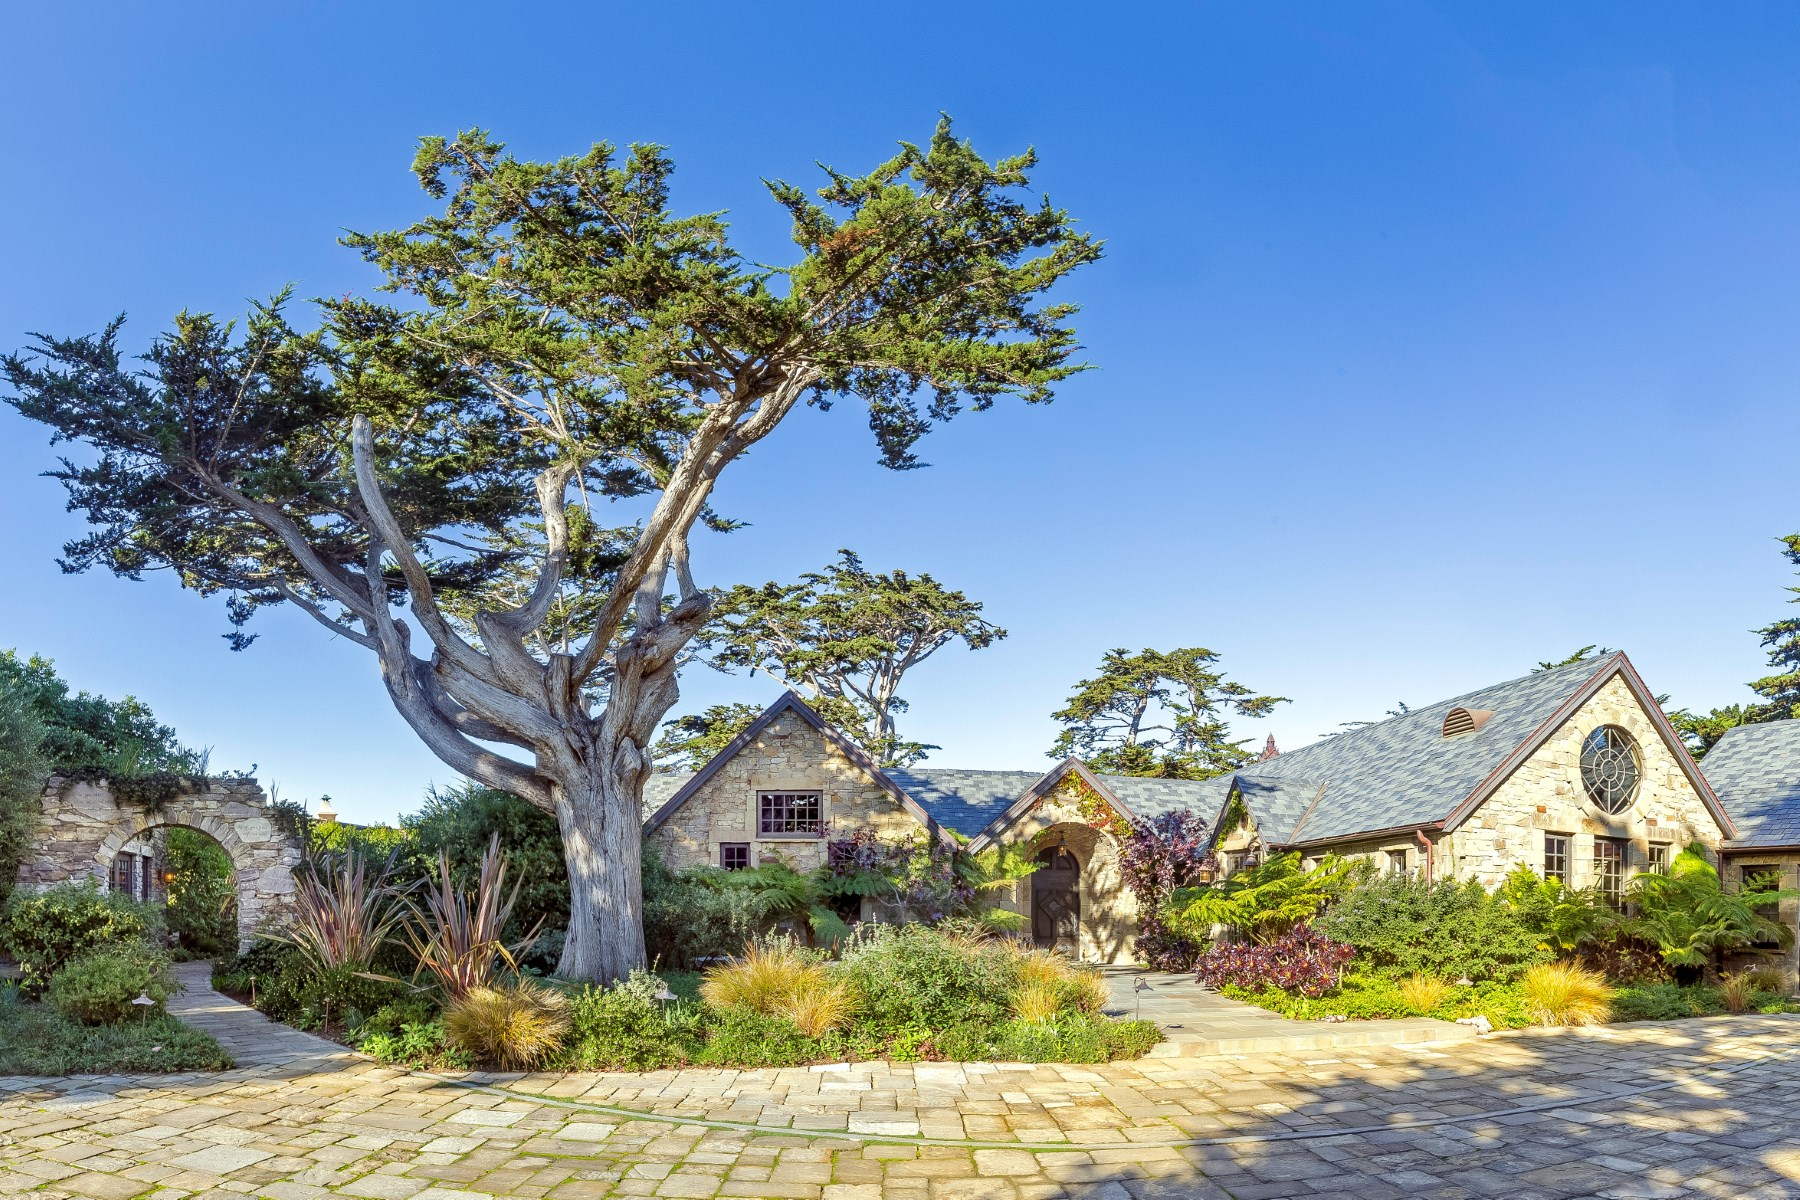 Single Family Home for Sale at Like No Other 26262 Isabella Avenue Carmel, California, 93923 United States